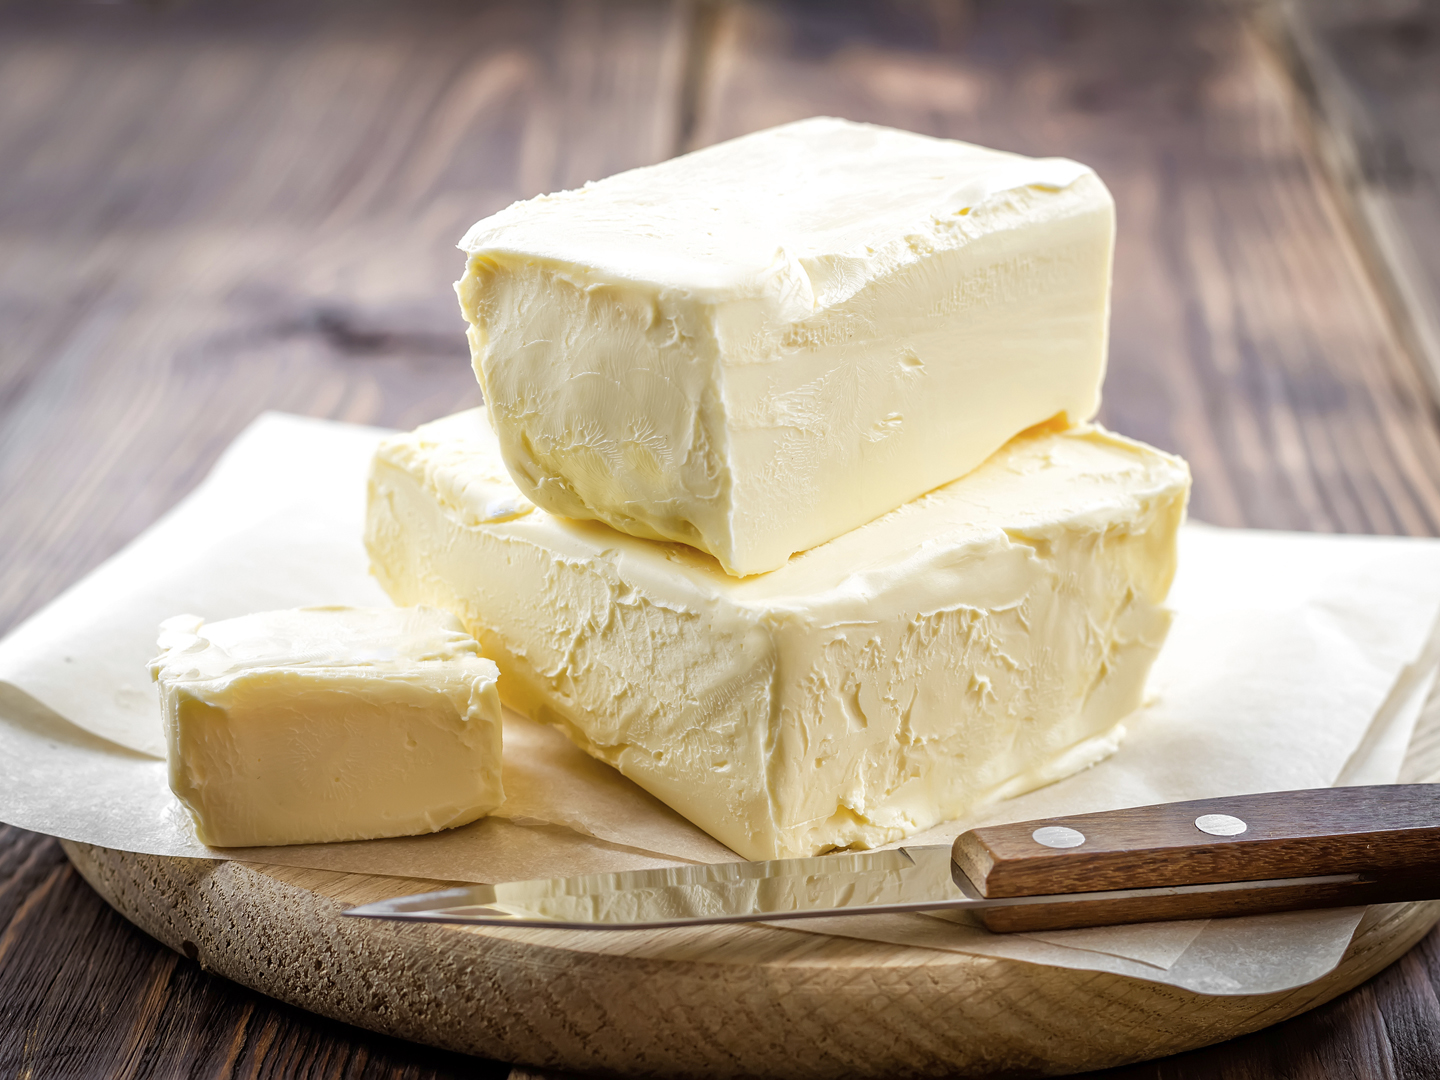 Is Butter Or Margarine The Healthier Choice To Use?